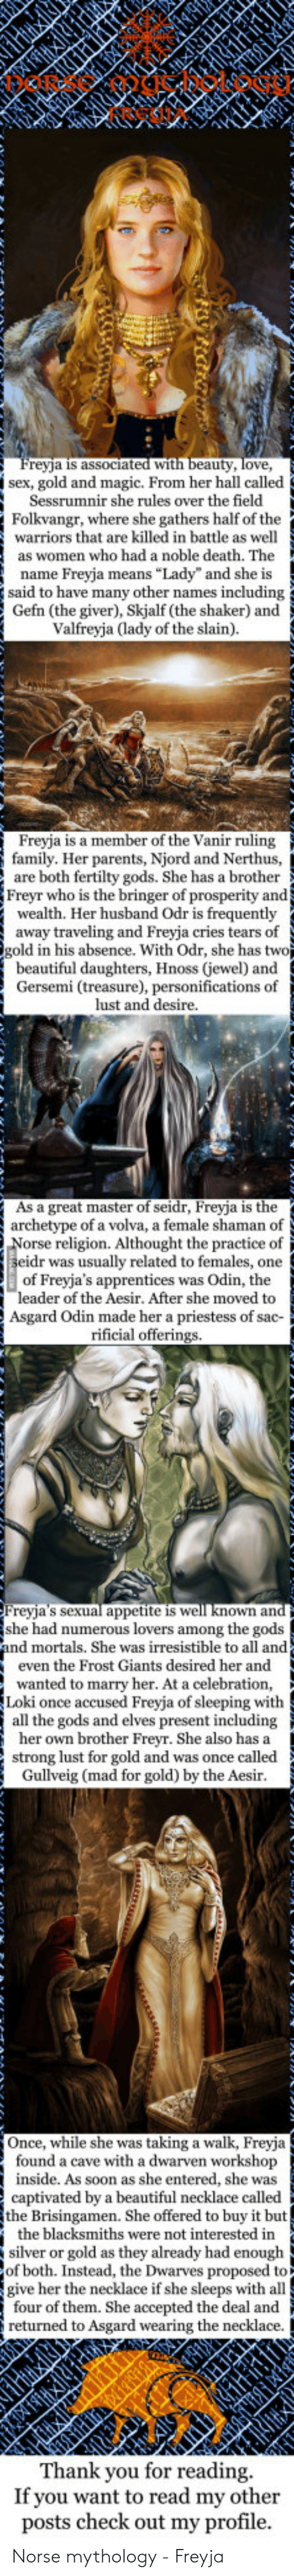 """Odr: Freyja is associated  uty, love,  with  jsex, gold and magic. From her hall called  Sessrumnir she rules over the field  Folkvangr, where she gathers half of the  warriors that are killed in battle as well  as women who had a noble death. The  name Freyja means """"Lady"""" and she is  said to have many other names including  Gefn (the giver), Skjalf (the shaker) and  Valfreyja (lady of the slain)  Freyja is a member of the Vanir ruling  family. Her parents, Njord and Nerthus,  are both fertilty gods. She has a brother  Freyr who is the bringer of prosperity and  wealth. Her husband Odr is frequently  away traveling and Freyja cries tears of  gold in his absence. With Odr, she has two  beautiful daughters, Hnoss (jewel) and  Gersemi (treasure), personifications of  lust and desire  As a great master of seidr, Freyja is the  archetype of a volva, a female shaman of  orse religion. Althought the practice of  r was usually related to females, one  of Freyja's apprentices was Odin, the  r of the Aesir. After she moved to  Asgard Odin made her a priestess of sac-  rificial offerings.  lappetite is  reyja's  she had numerous lovers among the gods  nd mortals. She was irresistible to all and  even the Frost Giants desired her and  wanted to marry her. At a celebration,  Loki once accused Freyja of sleeping with  all the gods and elves present including  her own brother Freyr. She also has a  strong lust for gold and was once called  wn and  Gullveig (mad for gold) by the Aesir  Once, while she was taking a walk, Freyja  found a cave with a dwarven workshop  inside. As soon as she entered, she was  captivated by a beautiful necklace called  the Brisingamen. She offered to buy it but  the blacksmiths were not interested in  silver or gold as they already had enough  of both. Instead, the Dwarves proposed to  give her the necklace if she sleeps with all  four of them. She accepted the deal and  returned to Asgard wearing the necklace.  Thank you for reading.  If you want to re"""